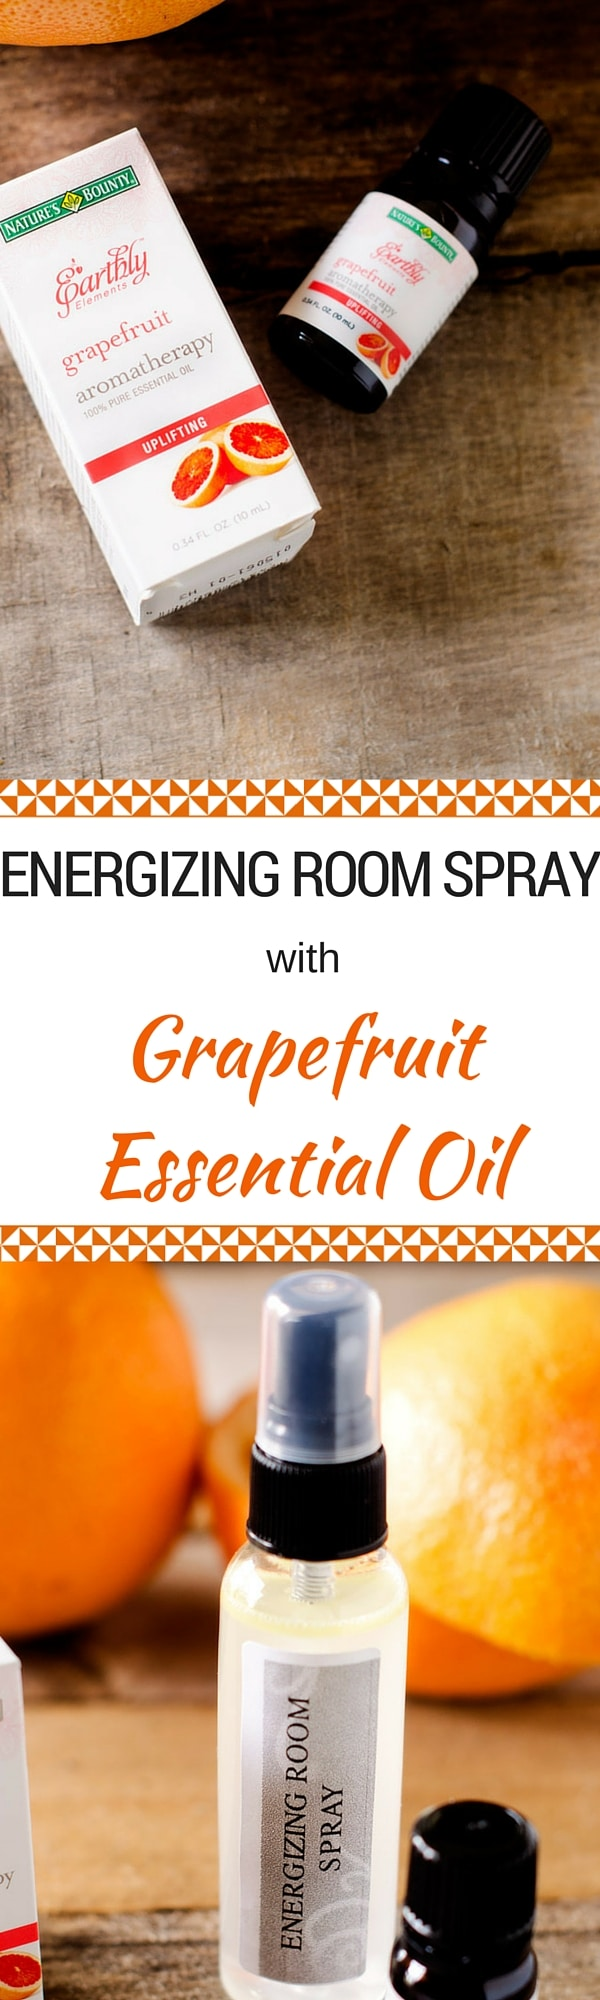 Energizing Room Spray with Grapefruit Essential Oil